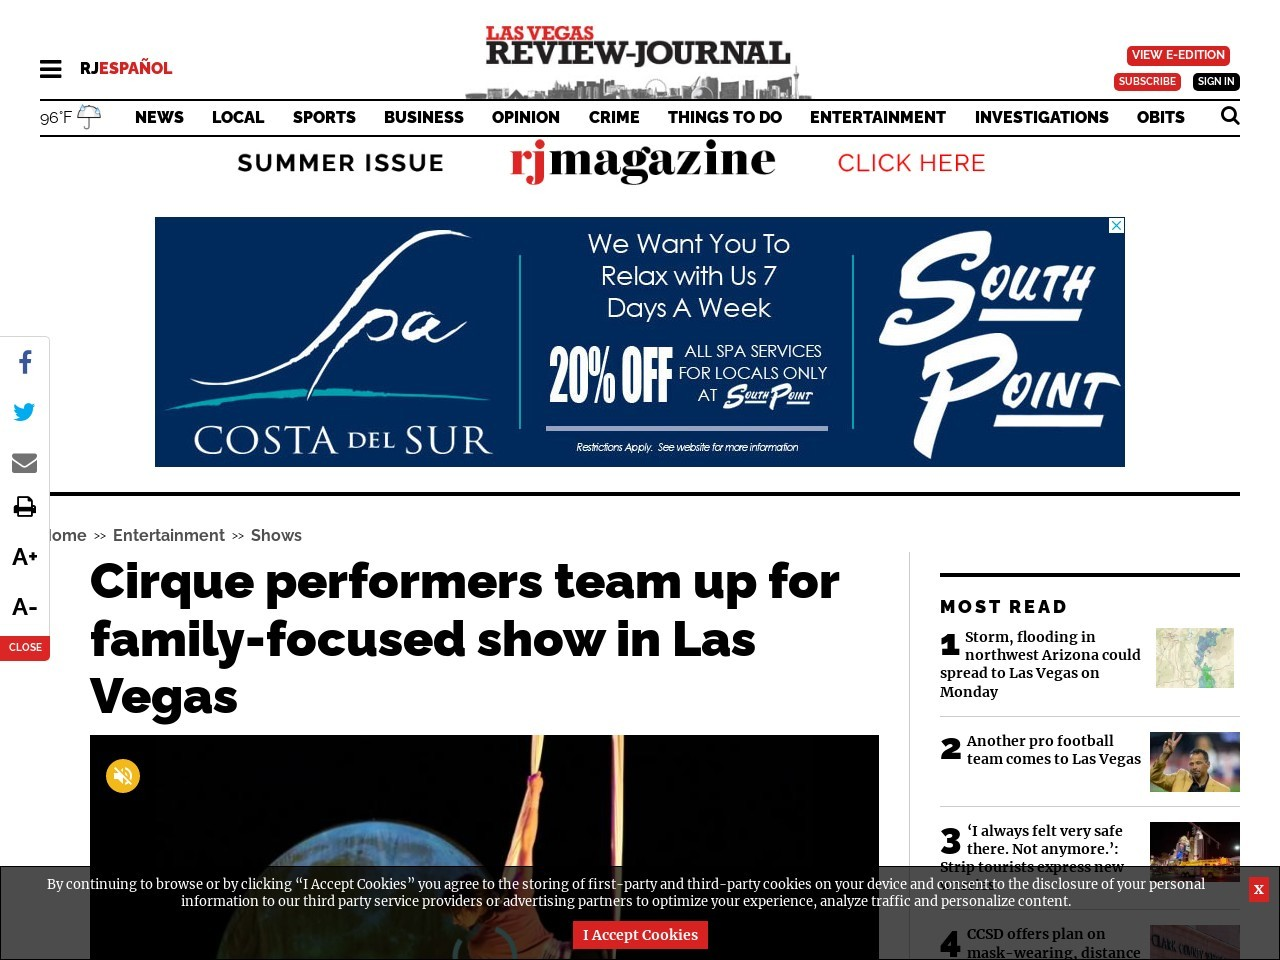 Cirque performers team up for family-focused show in Las Vegas